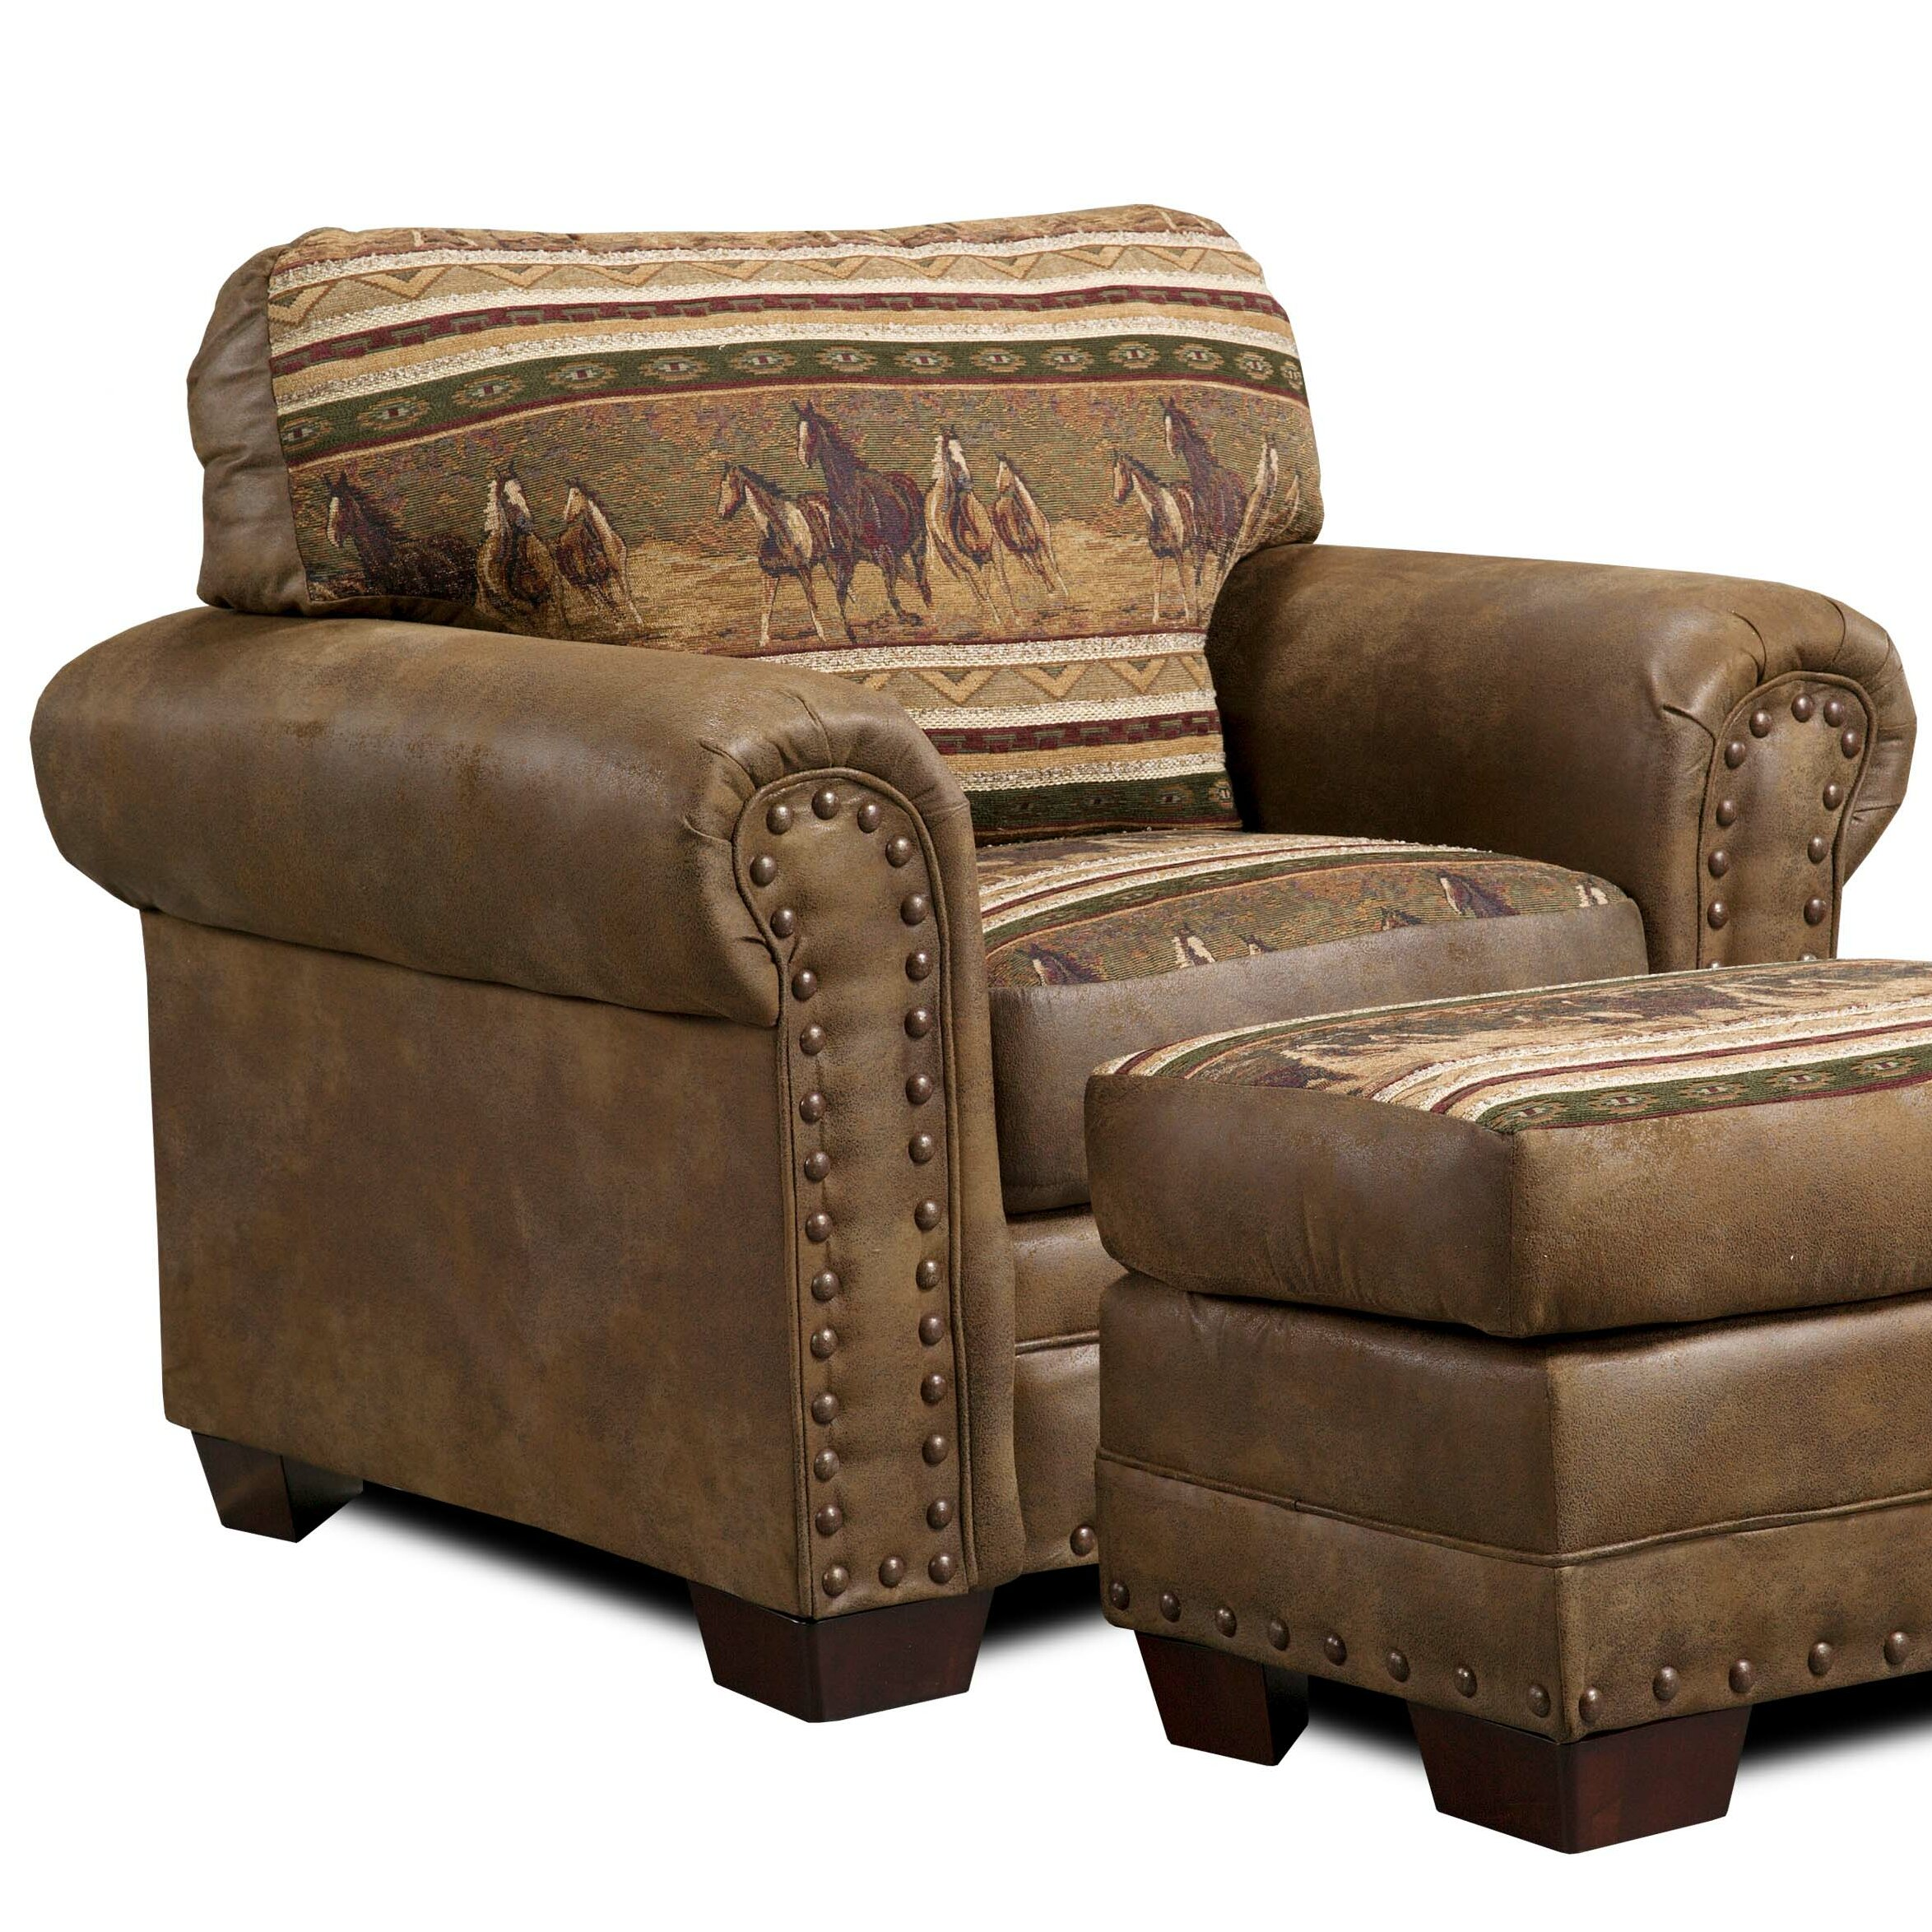 American Furniture Classics Wild Horses Lodge Living Room Collection Reviews Wayfair